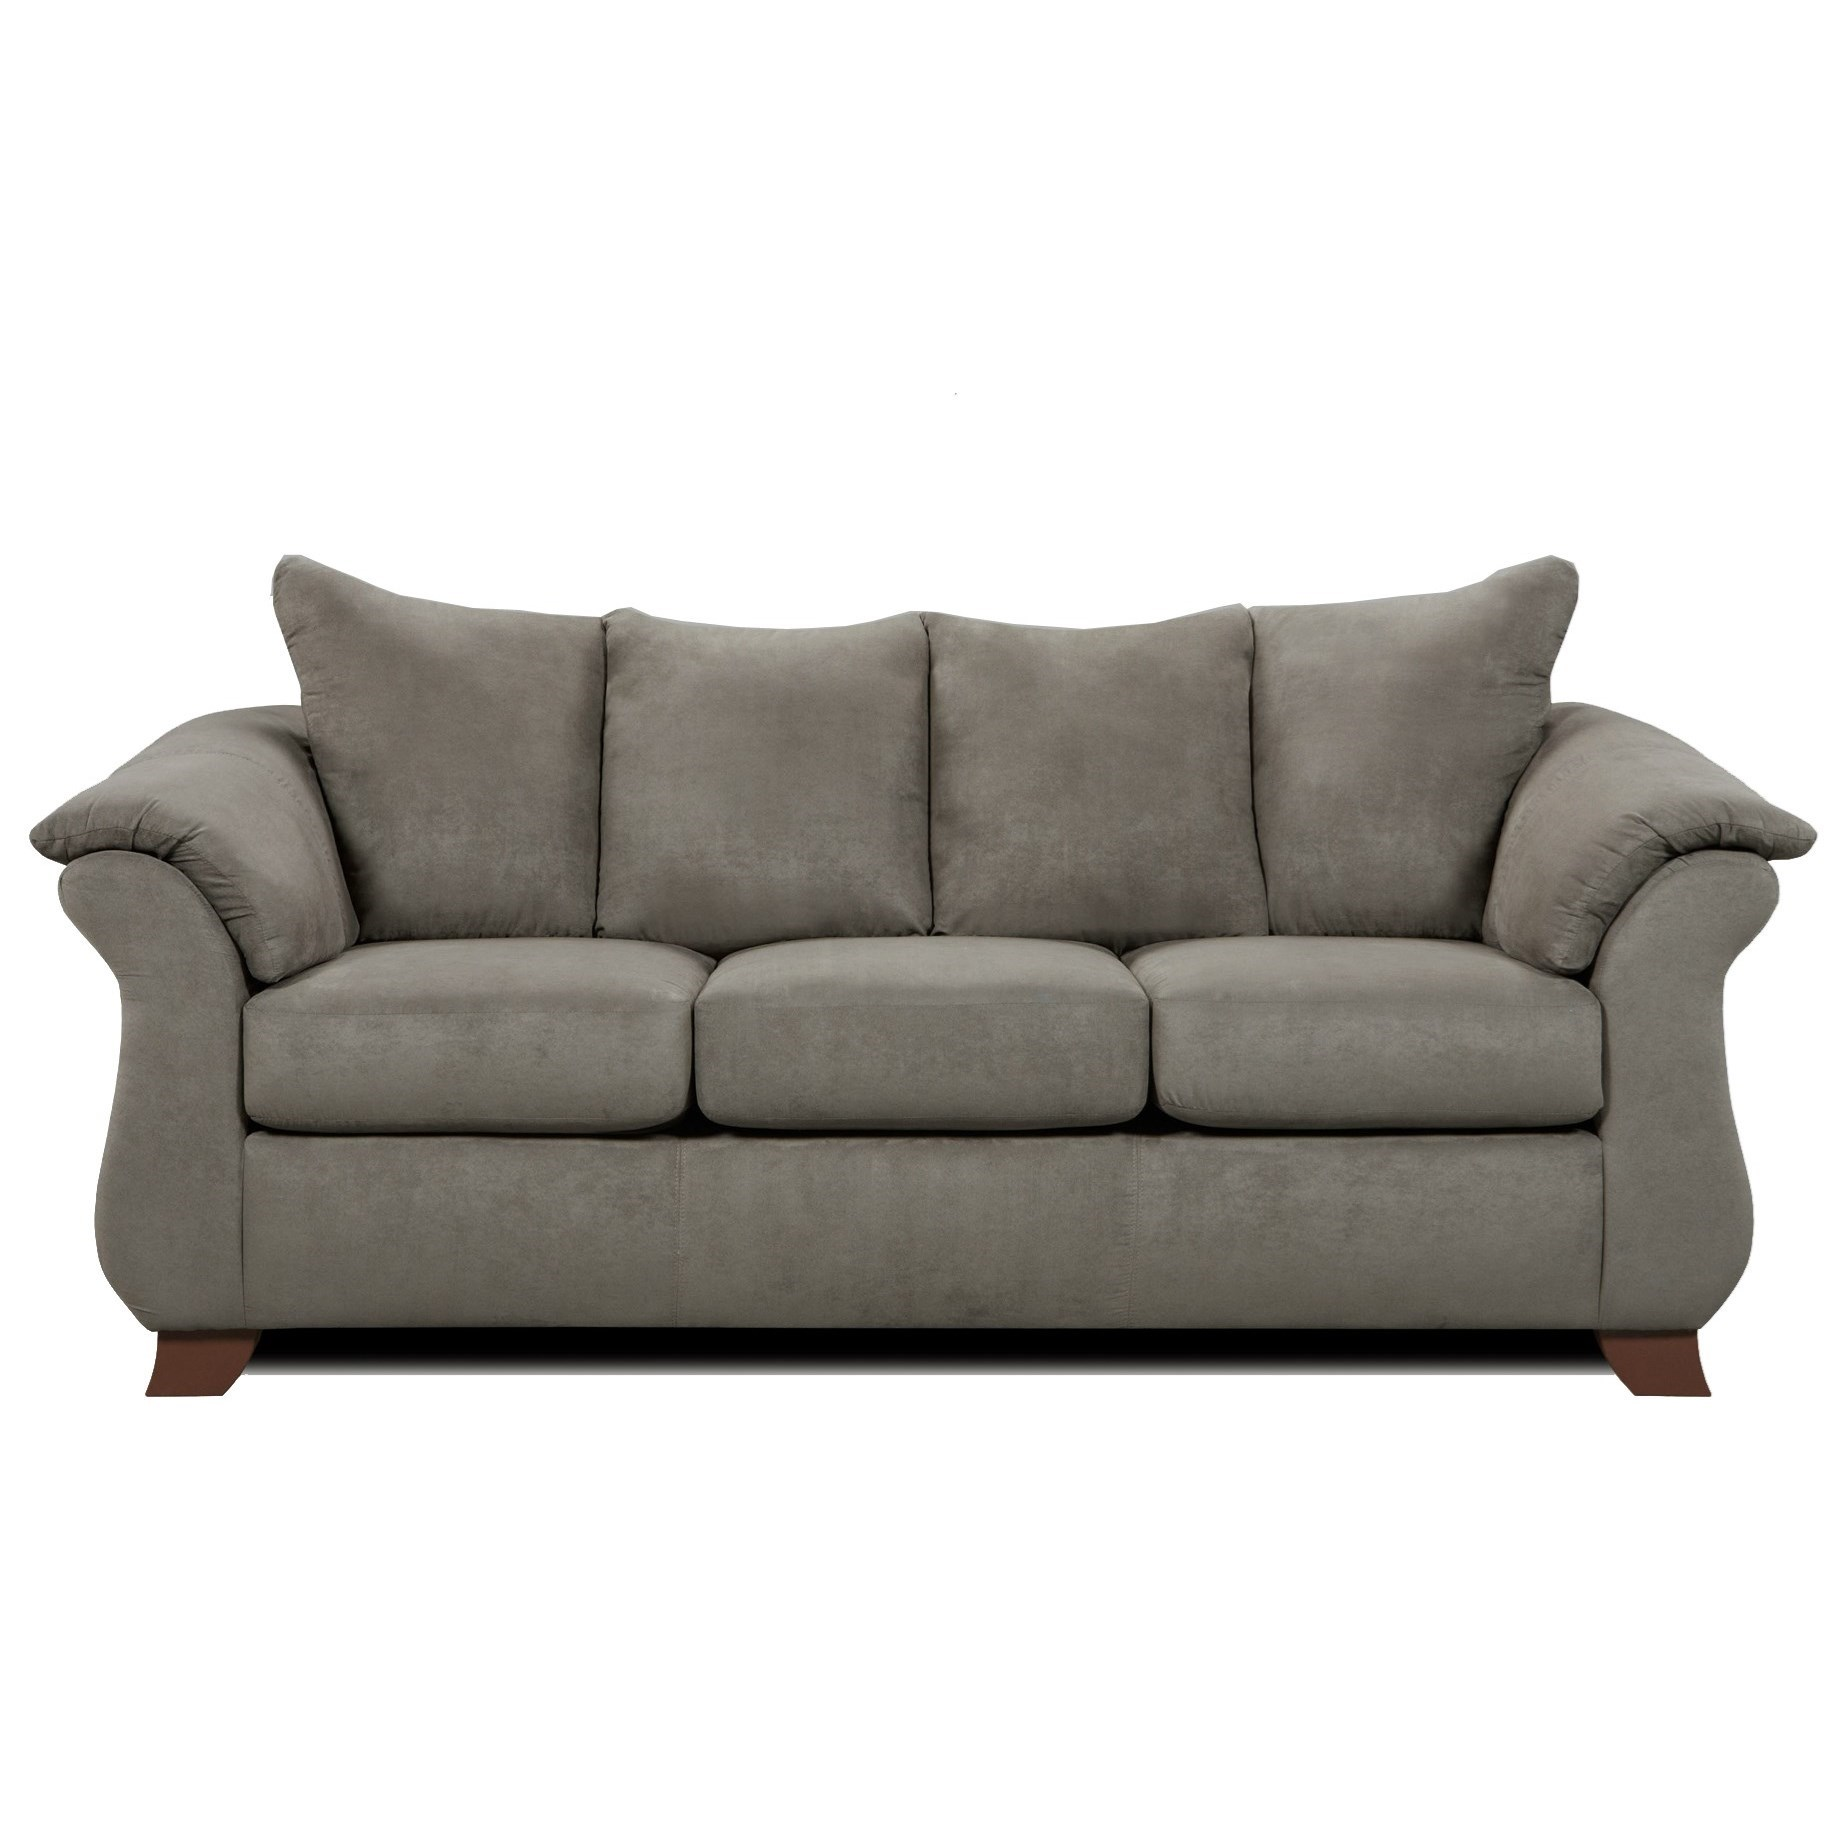 Affordable Furniture 6700 Sofa - Item Number: 6703 Sensations Grey